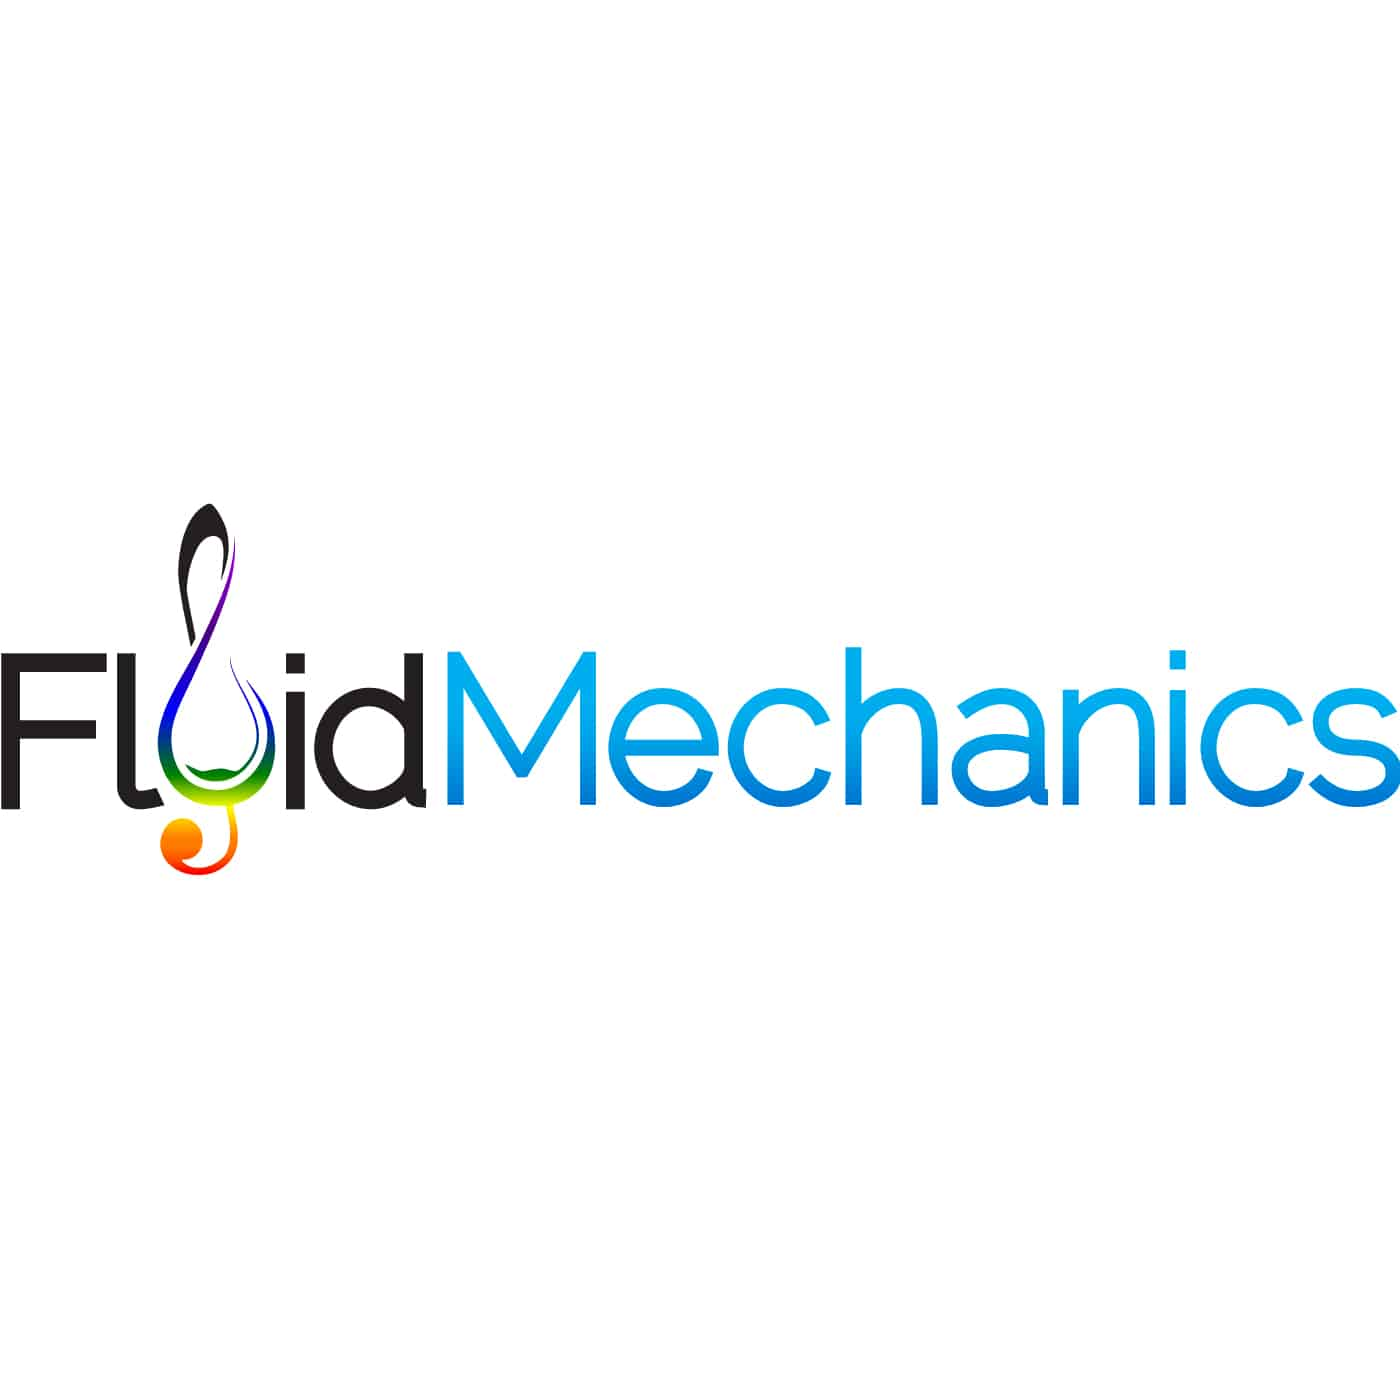 Fluid Mechanics - What